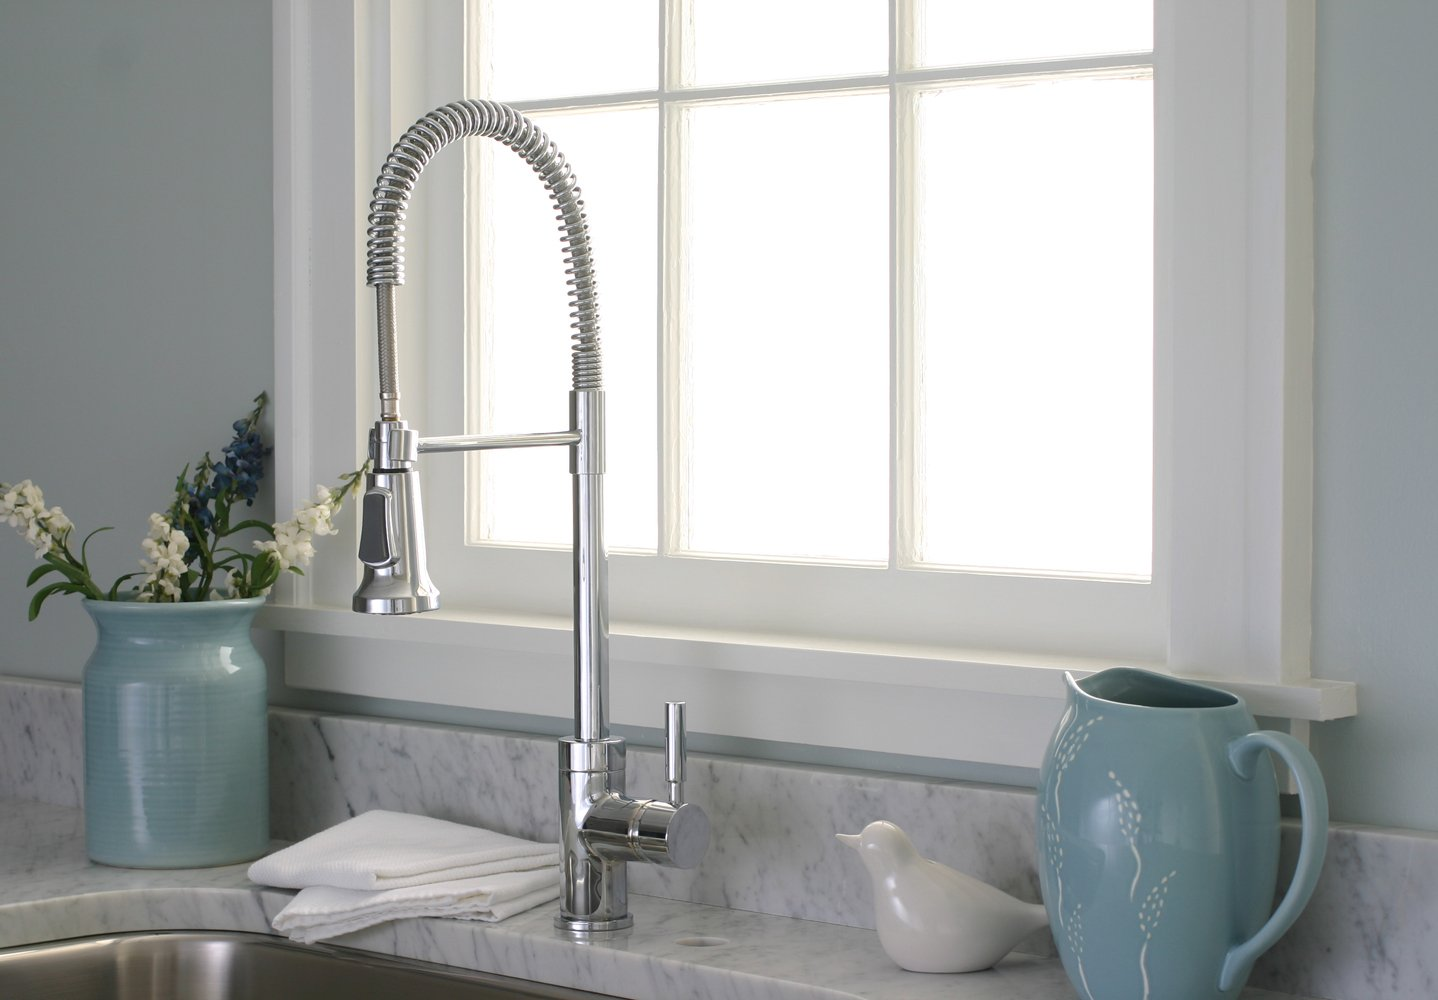 Premier 120334 Essen Single Handle Commercial Style Pull Down Kitchen Faucet,  PVD Brushed Nickel   Touch On Kitchen Sink Faucets   Amazon.com